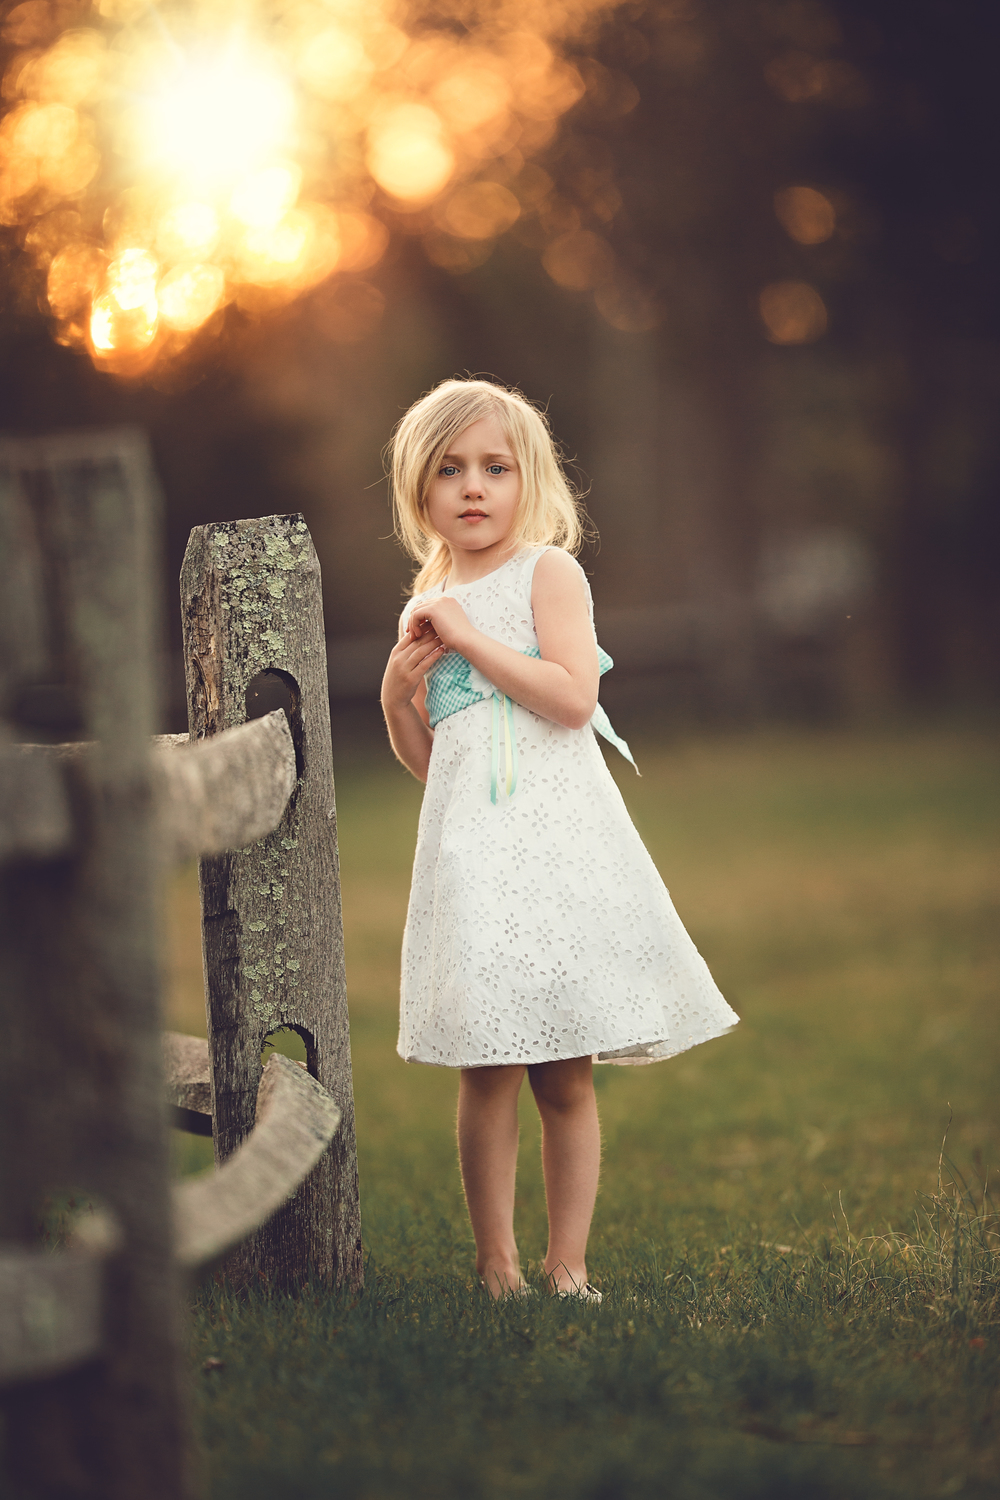 Hello-olivia-photographer-long-island-family-portrait-photographer-sod-farm-fence-white-dress-yapjank